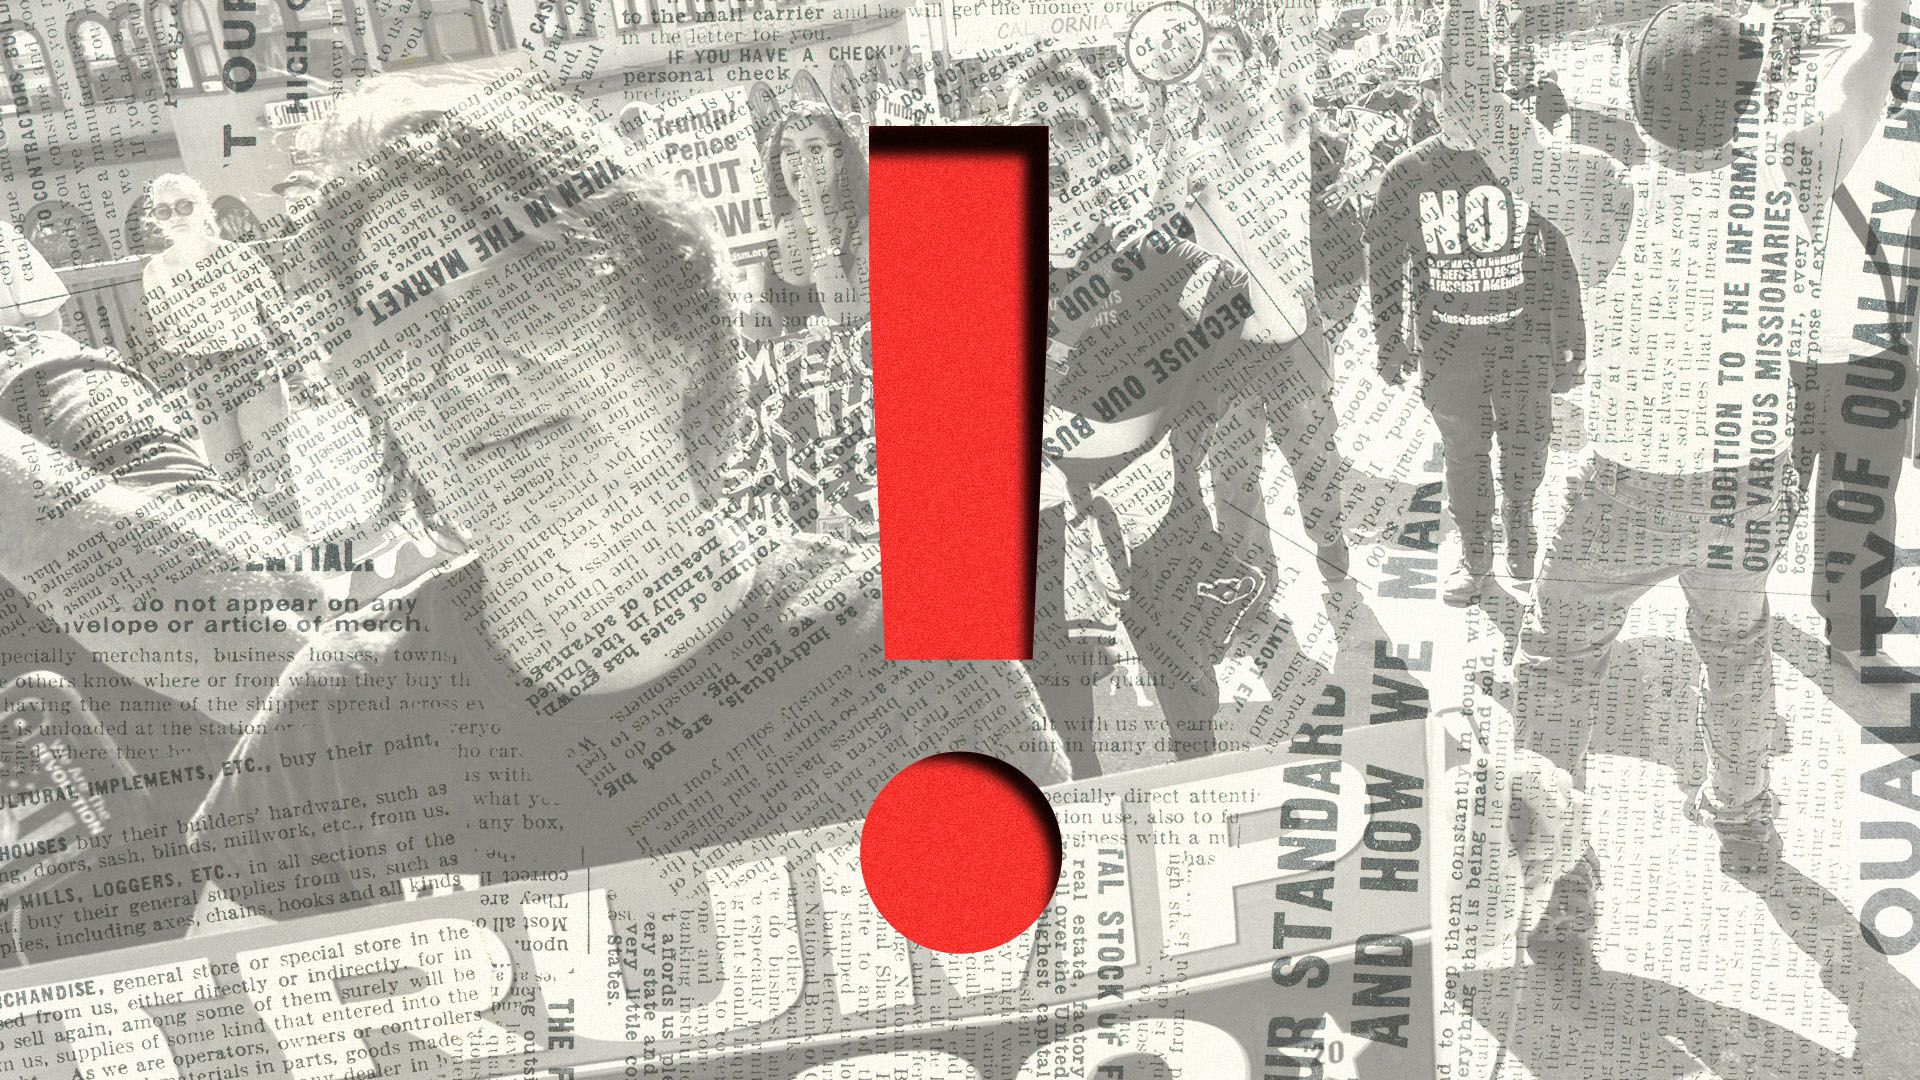 Illustrated collage of a political demonstration overlaid with newspaper clippings, with a big red exclamation point cut out of the center